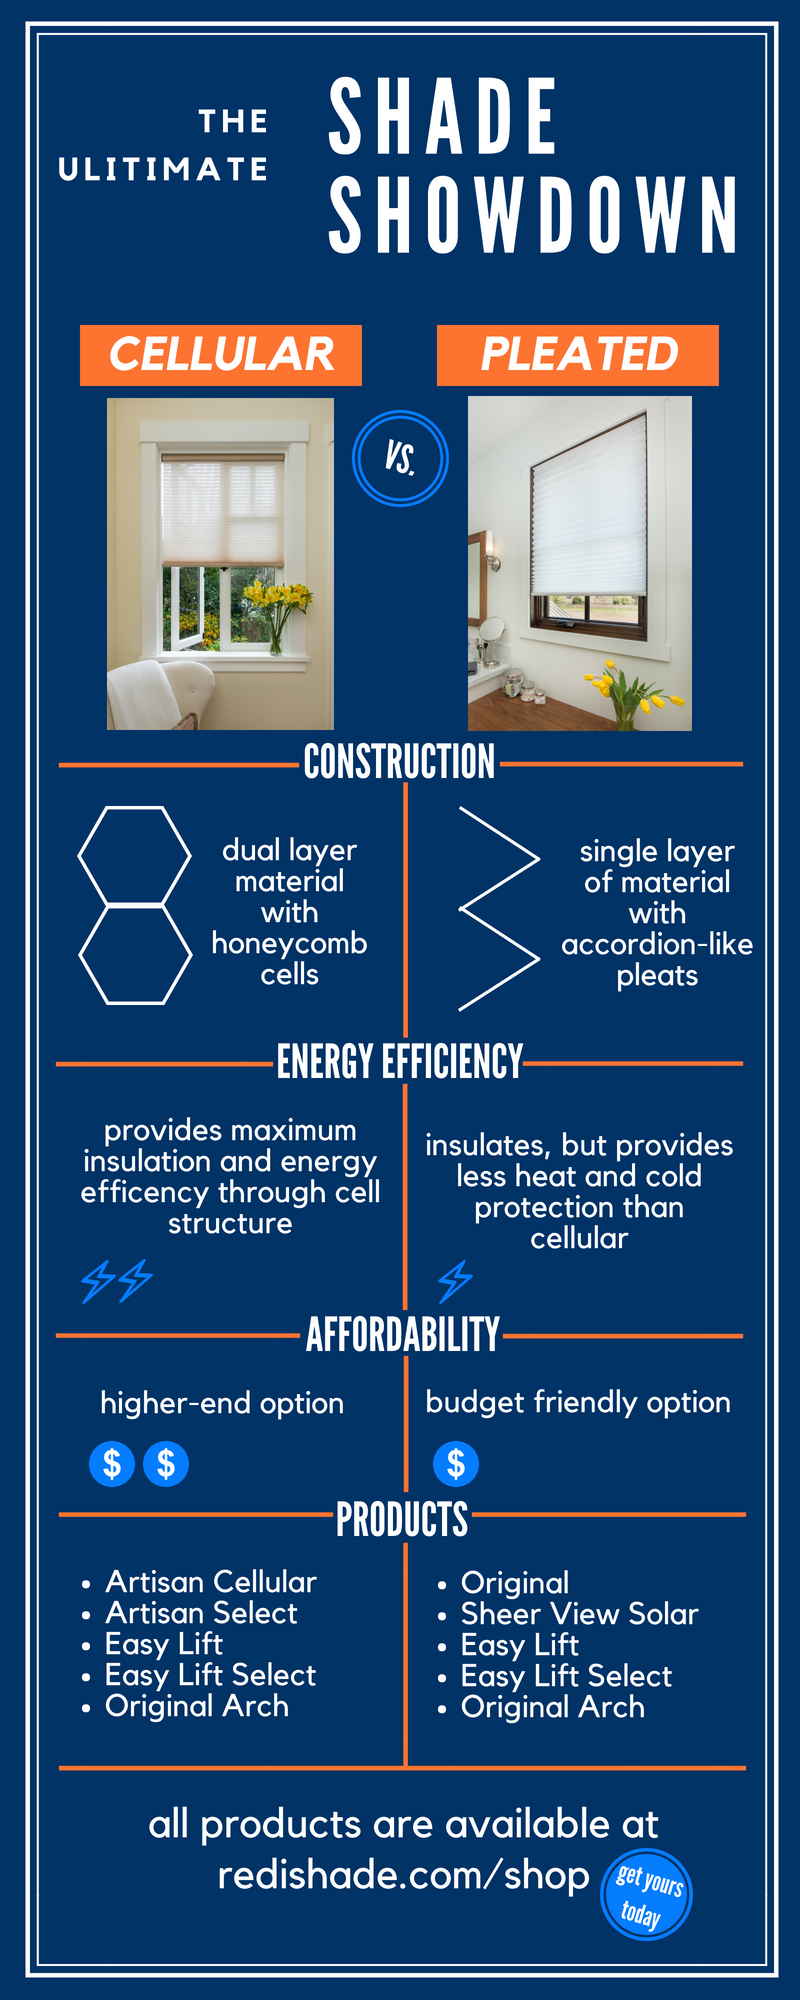 cellular and pleated window shades comparison graphic